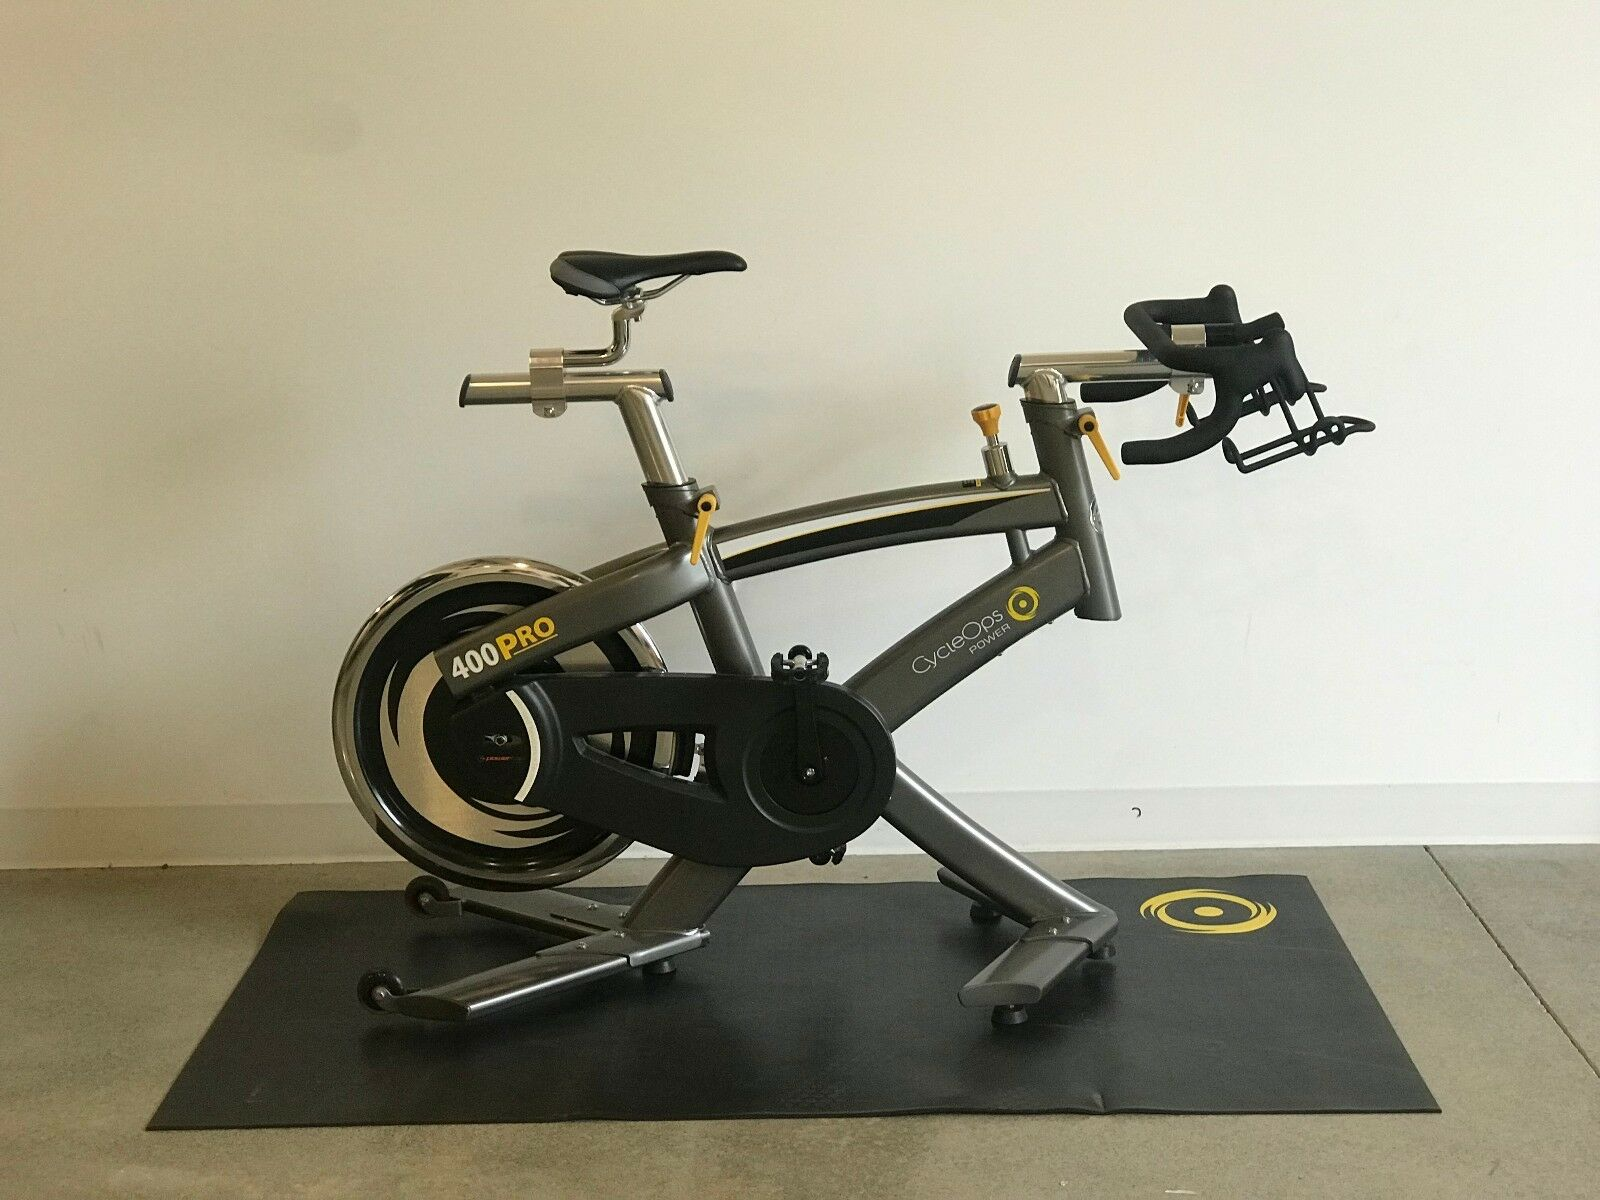 CycleOps 400 Pro Trainer Indoor Cycle - Slightly Used